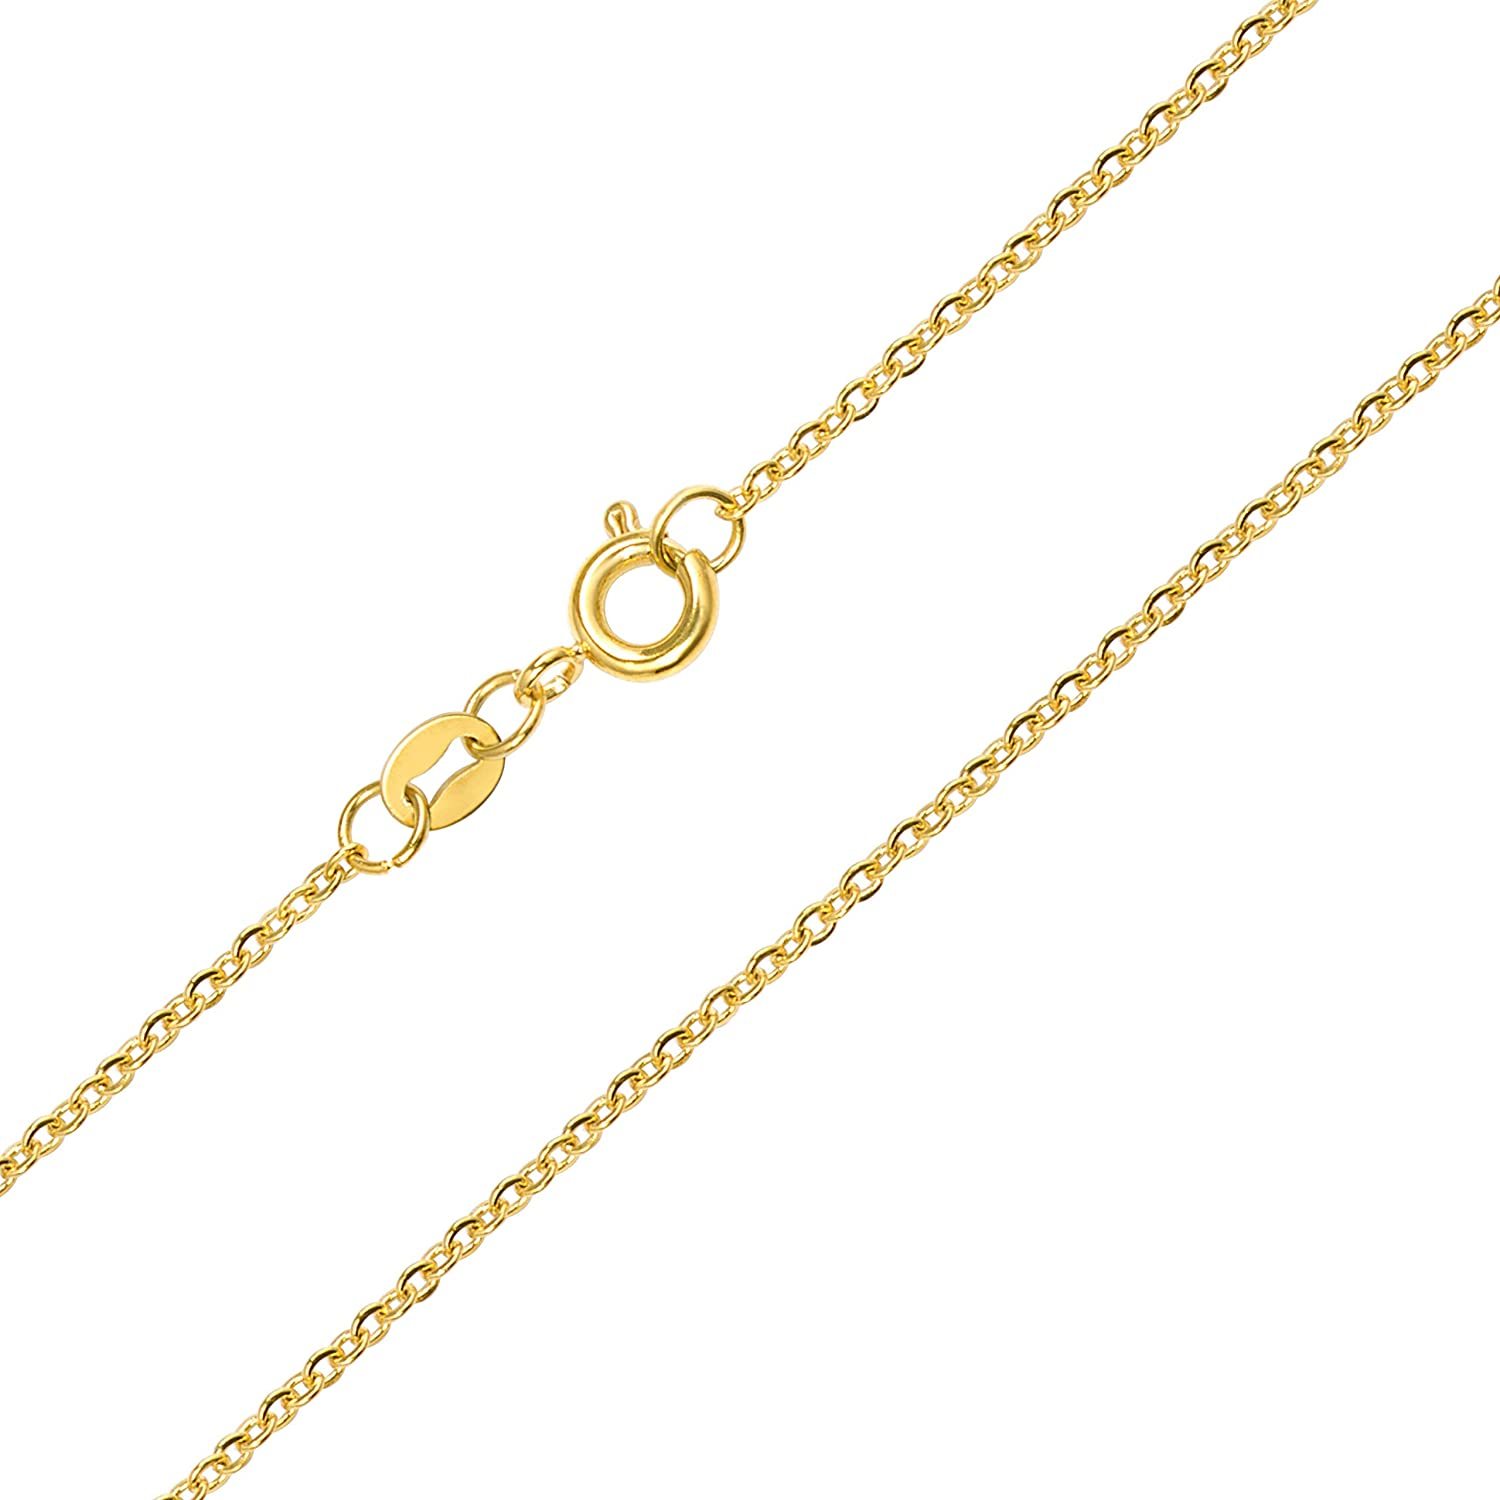 14 MAJU Designers 24k Gold Over Stainless Steel 1.5mm Thin Cable Link Chain Necklace 30 inch